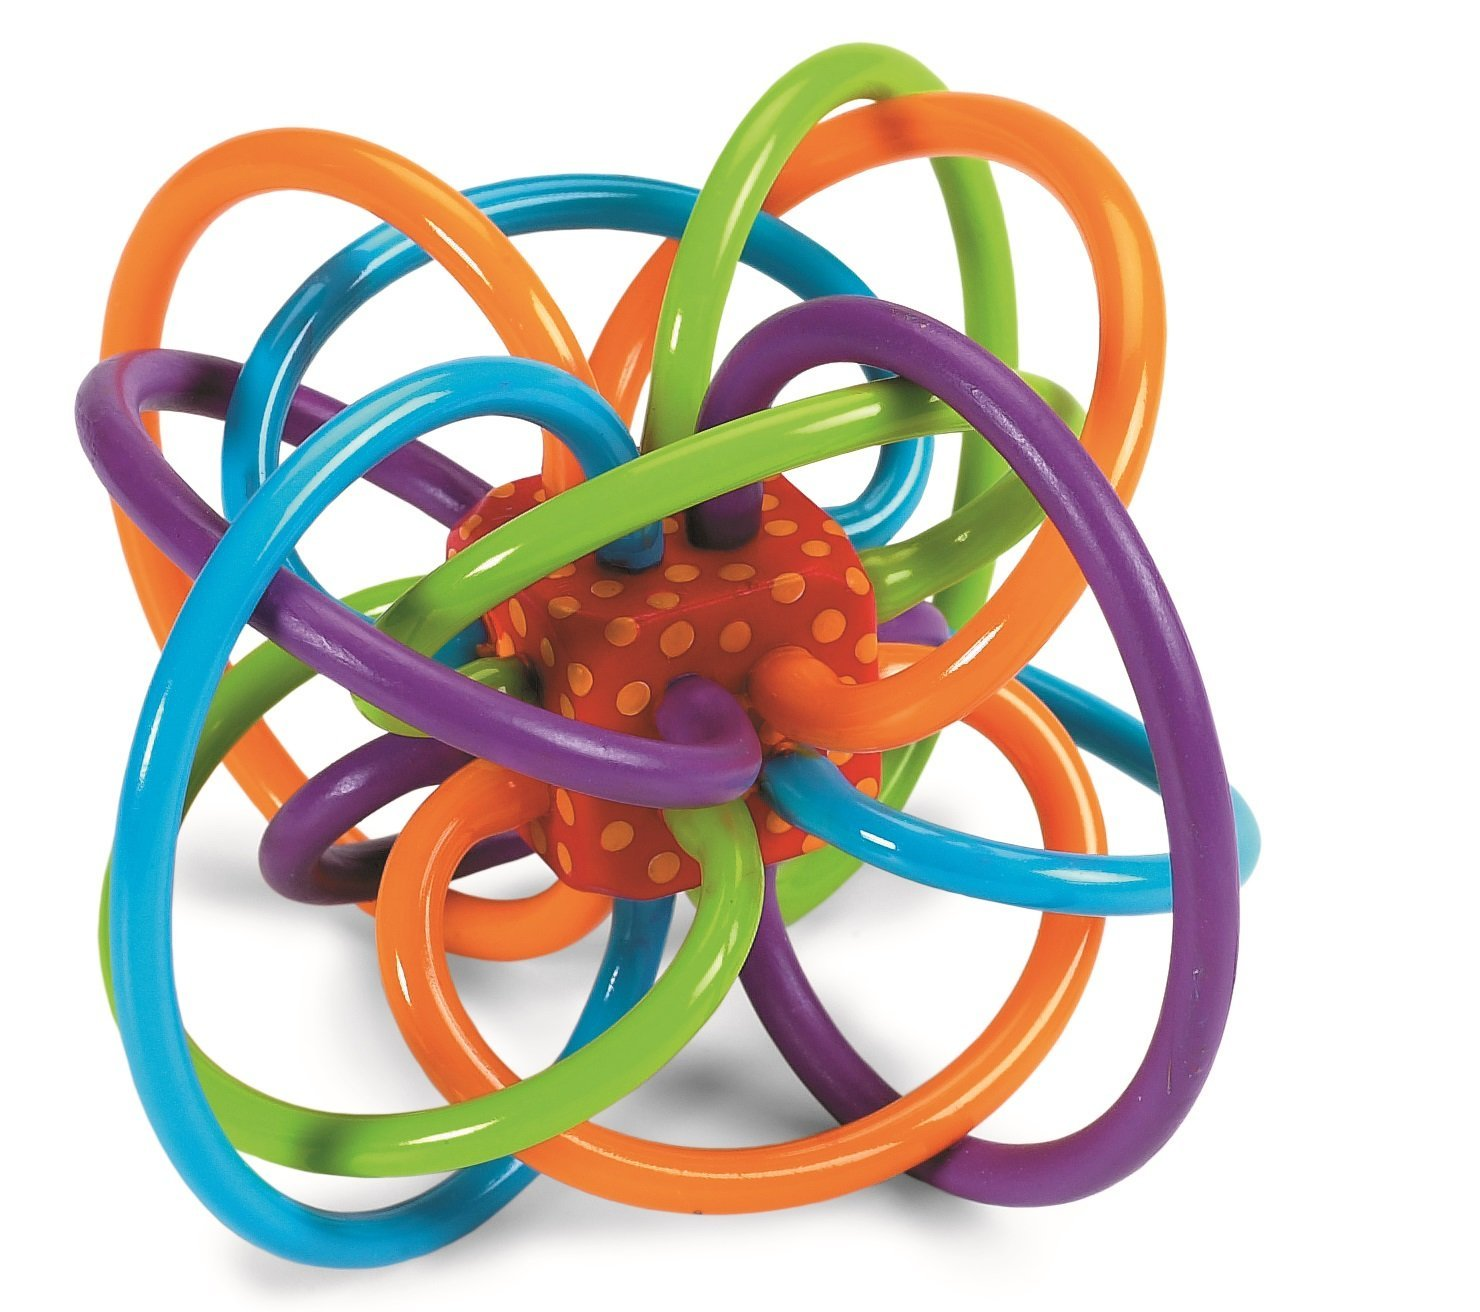 The Manhattan Toy Winkel Rattle and Sensory Teether Activity Toy is made up  of soft plastic loops in bright colors. Babies can easily grasp the loops  with ... e8a7d53220